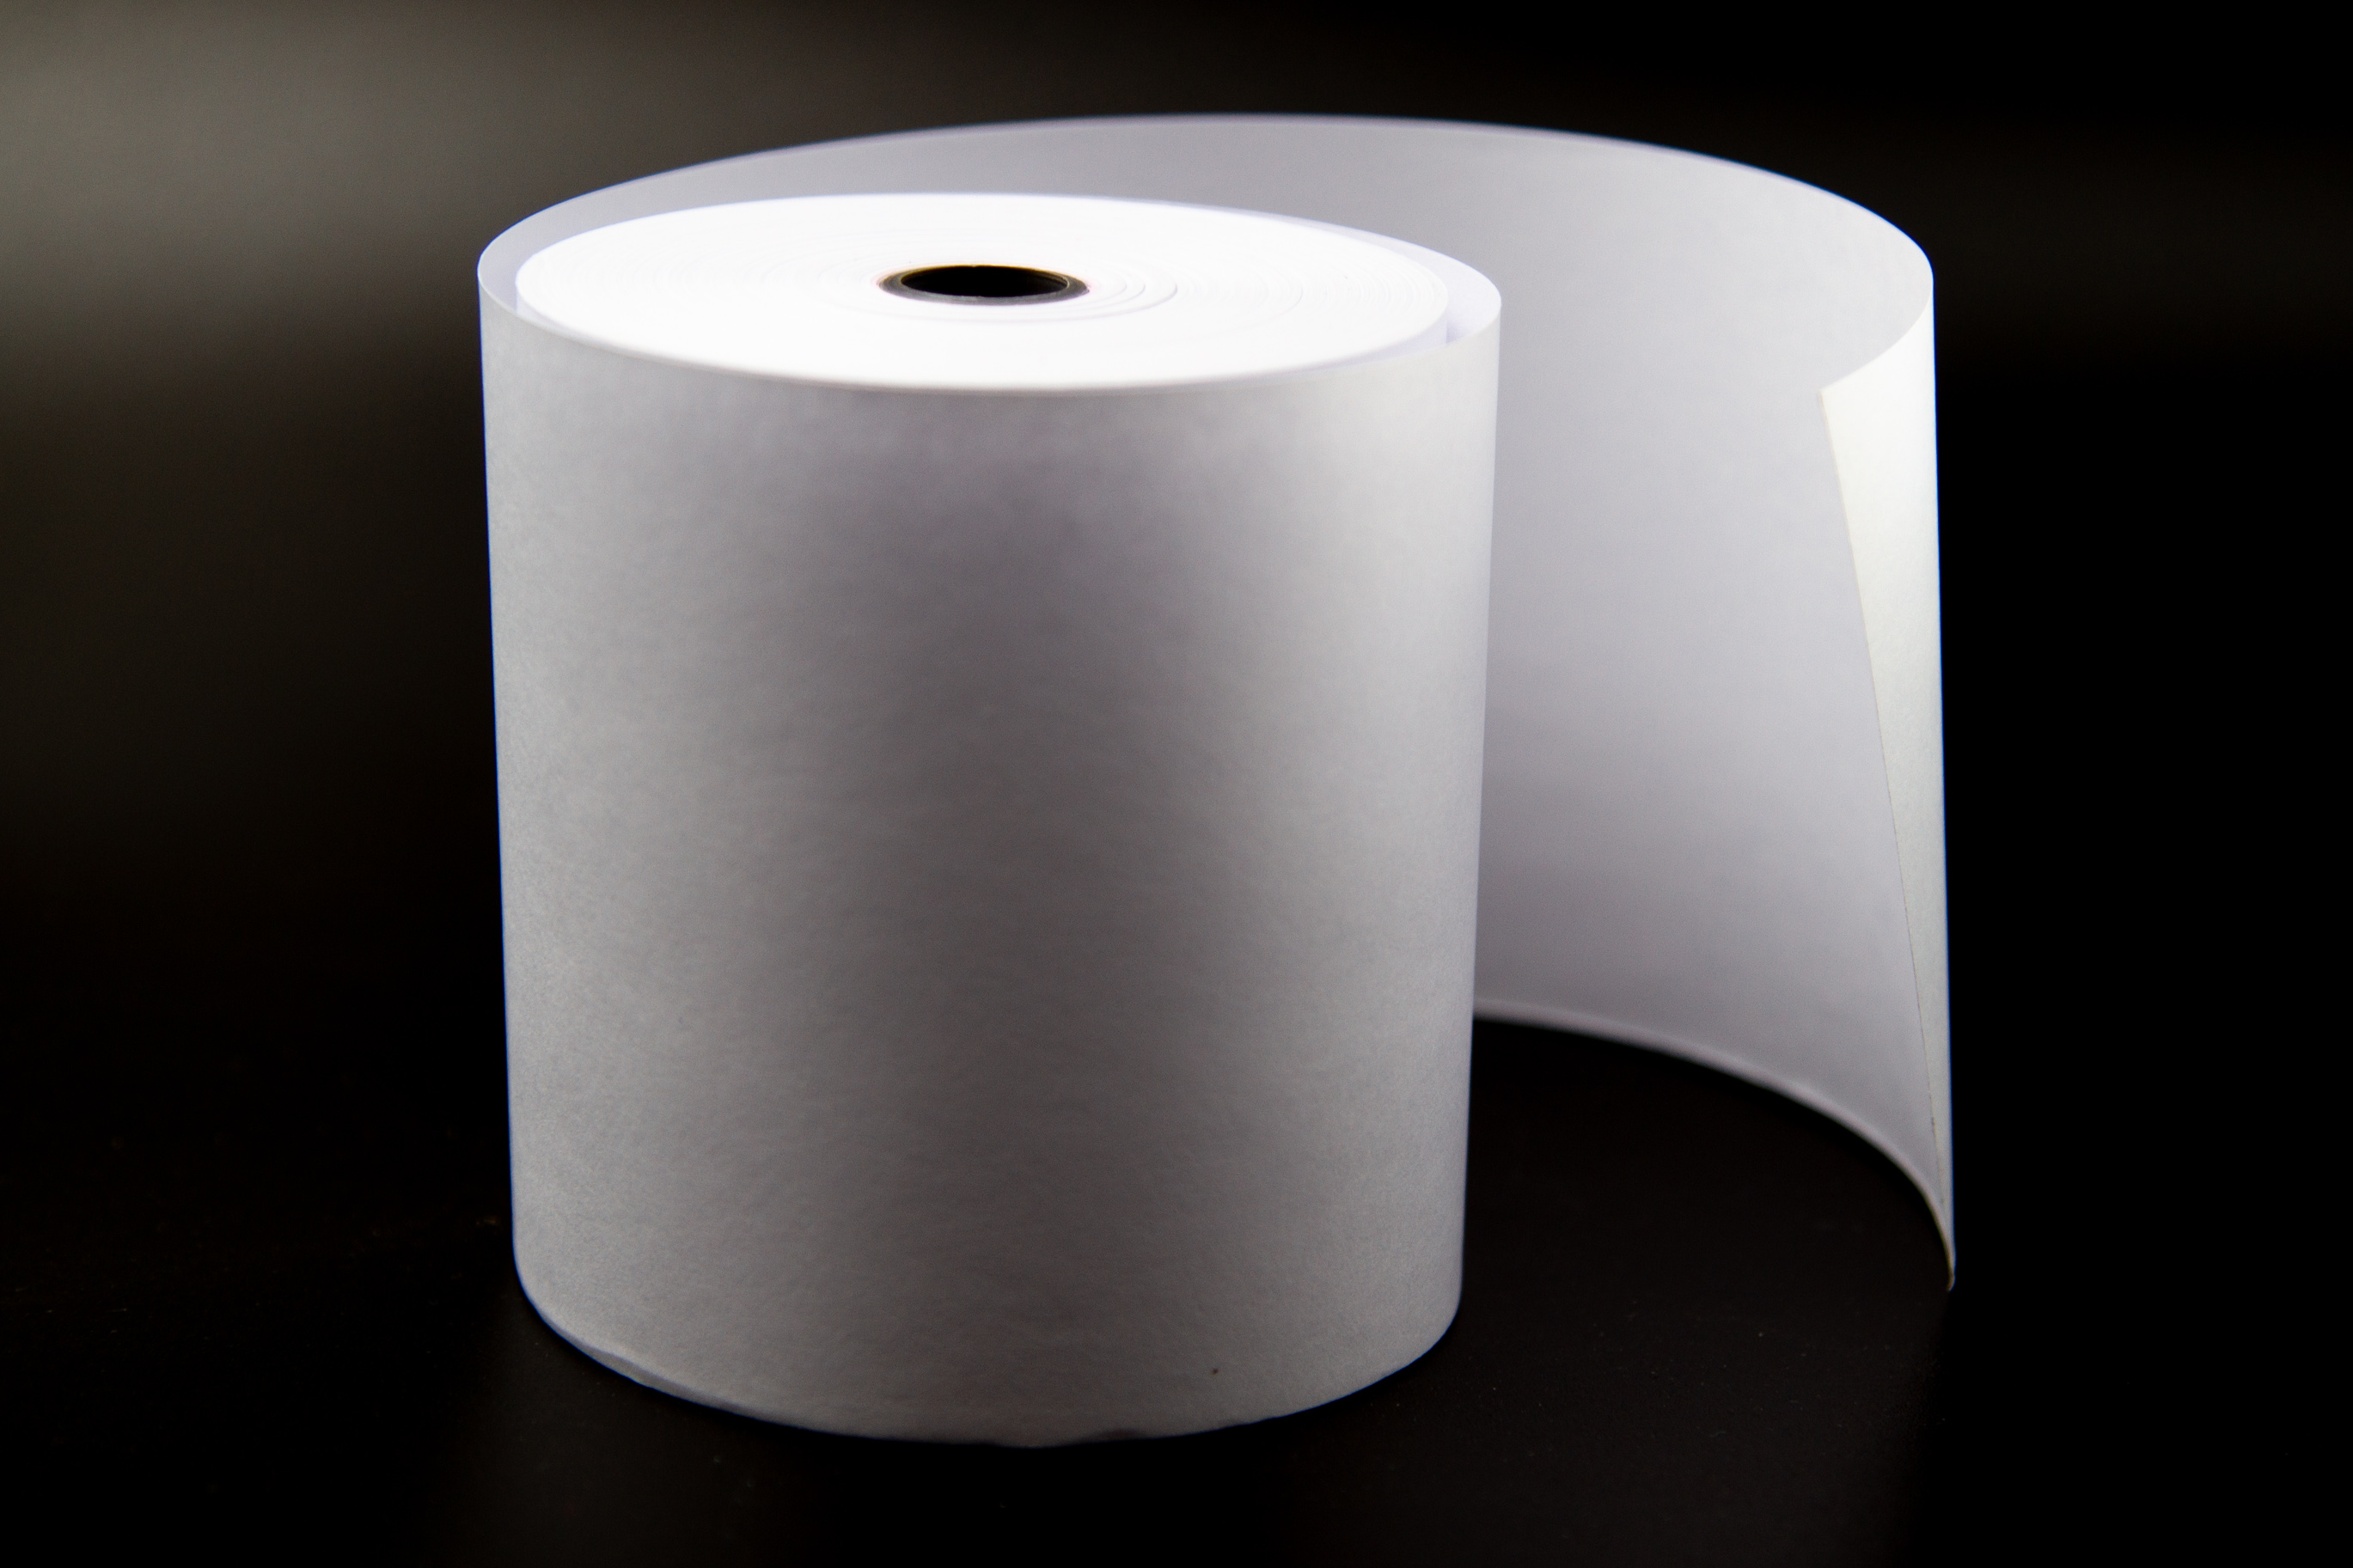 Receipt Paper 10 Rolls 3 1/8 x 230 for Epson Thermal Printer